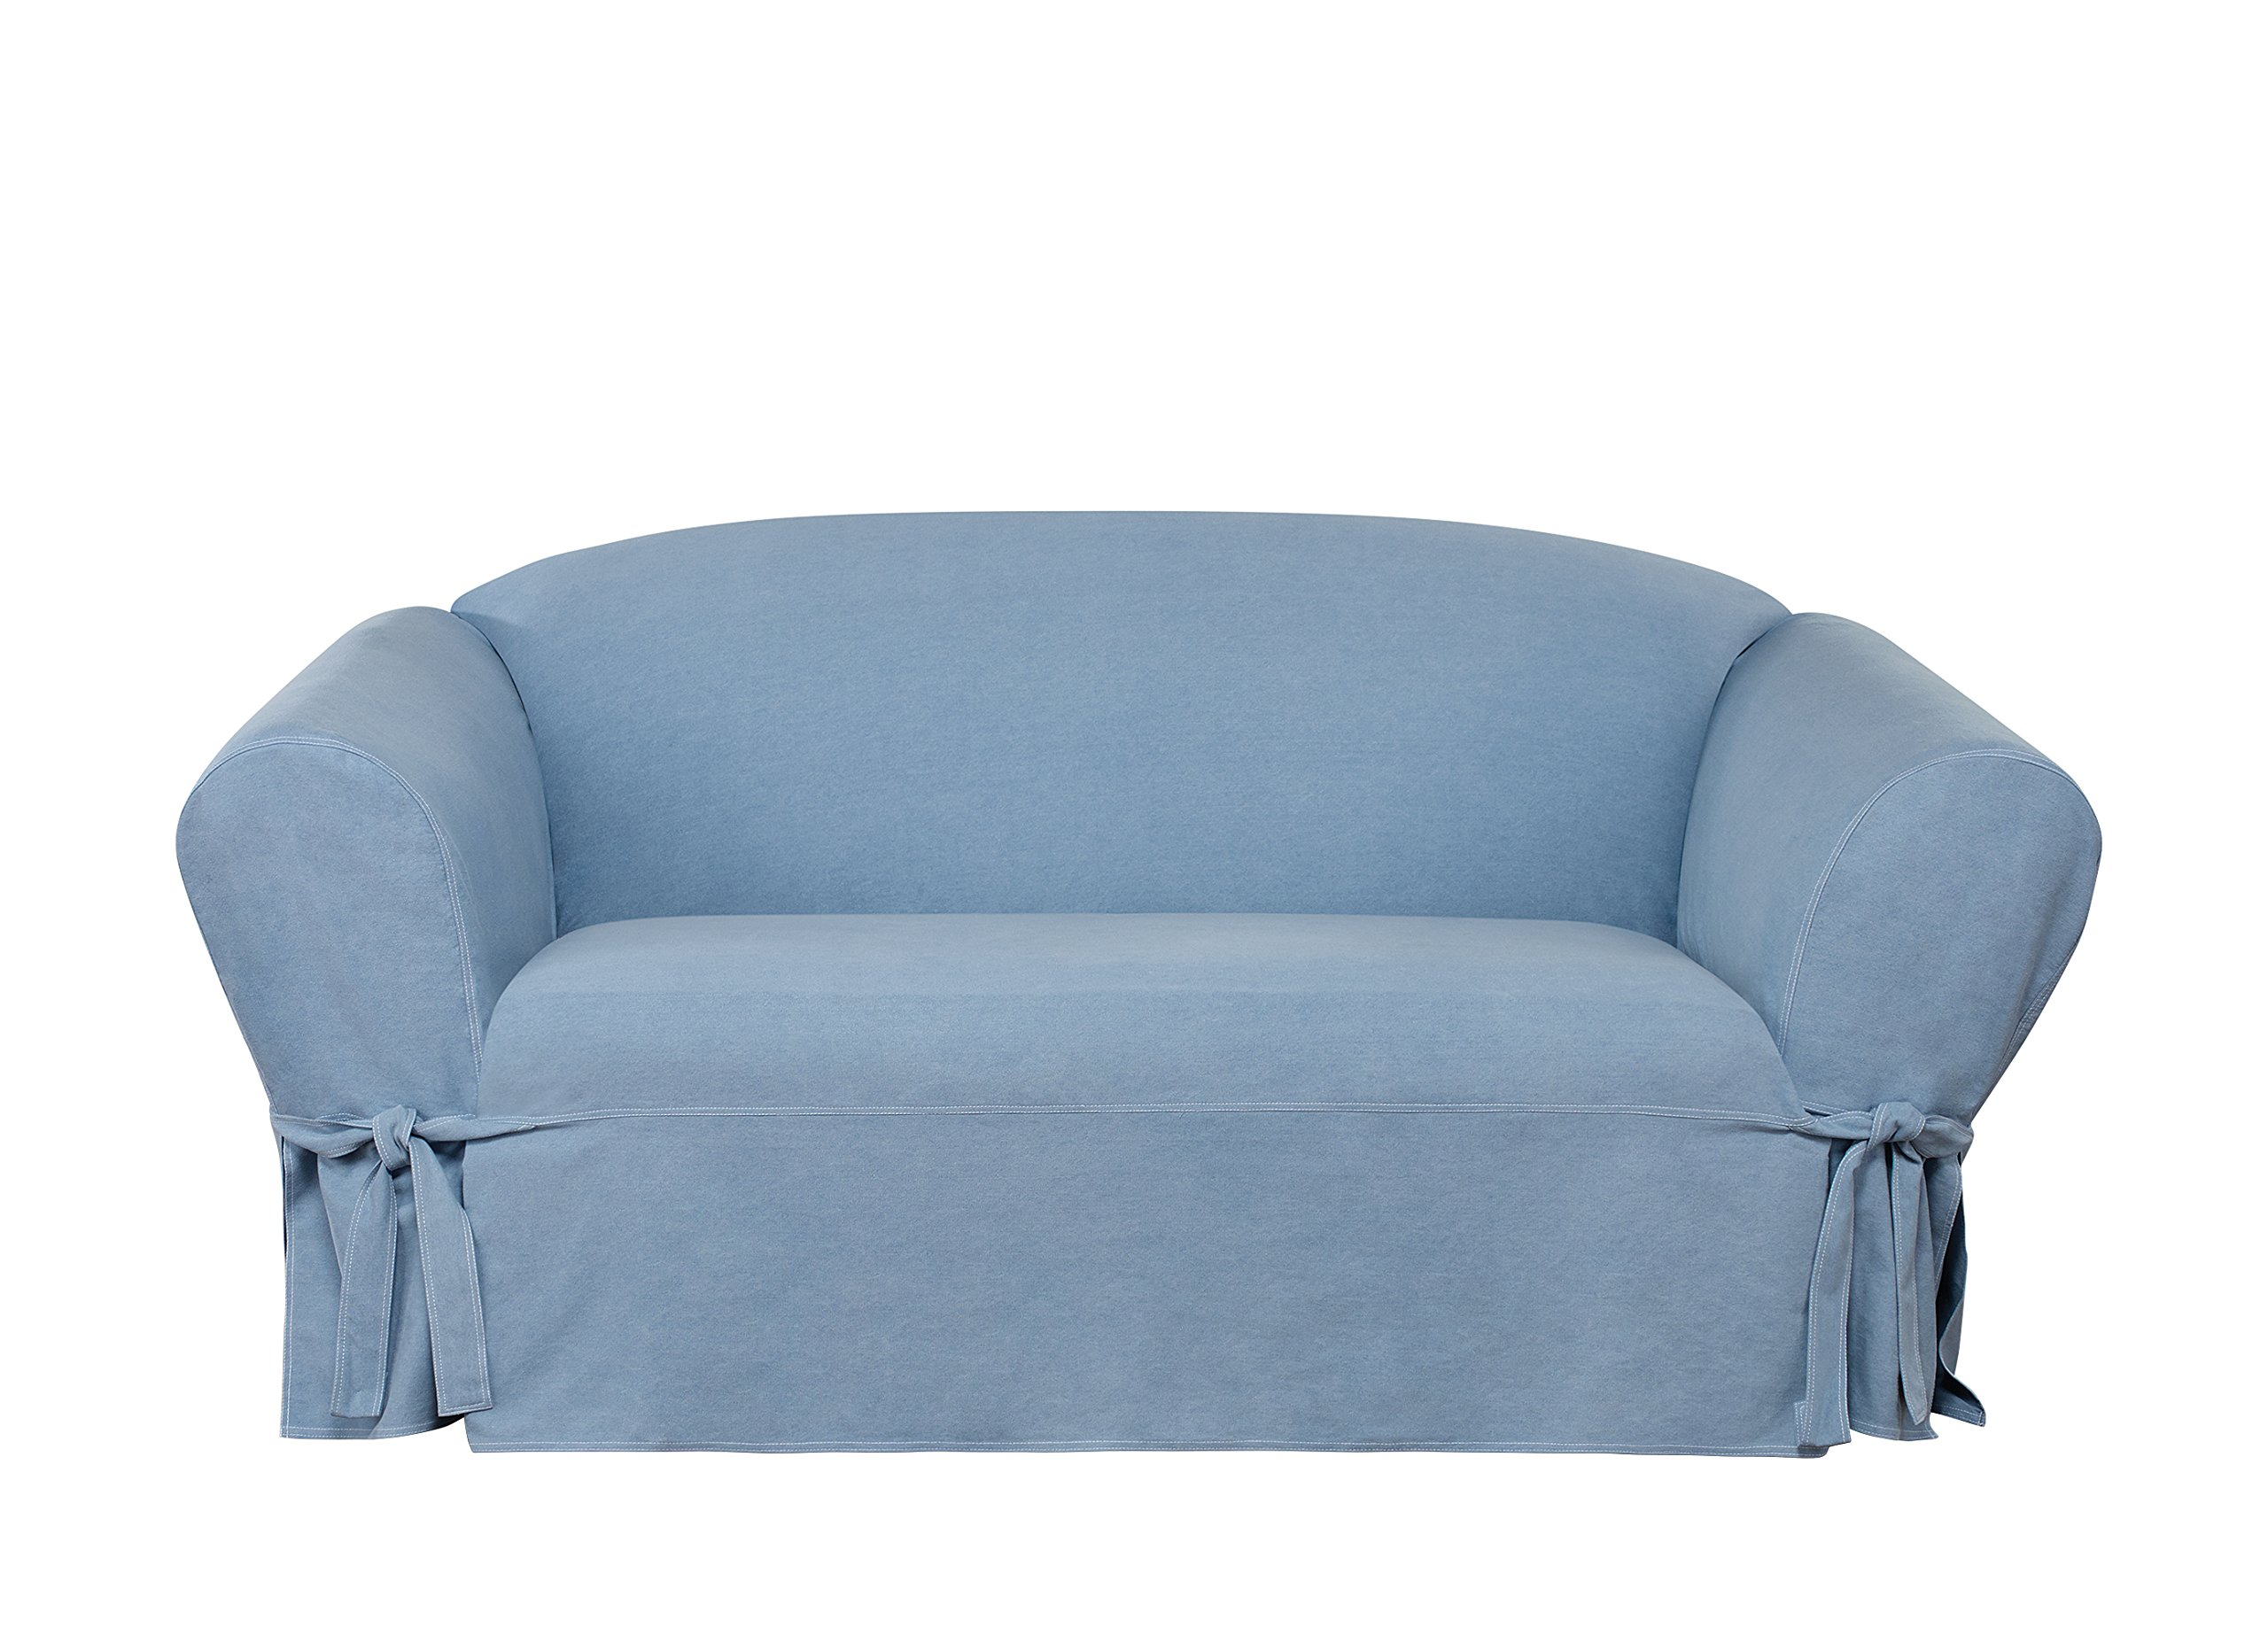 Sure Fit Authentic Denim One-Piece Loveseat Slipcover, Box Cushion - Chambray